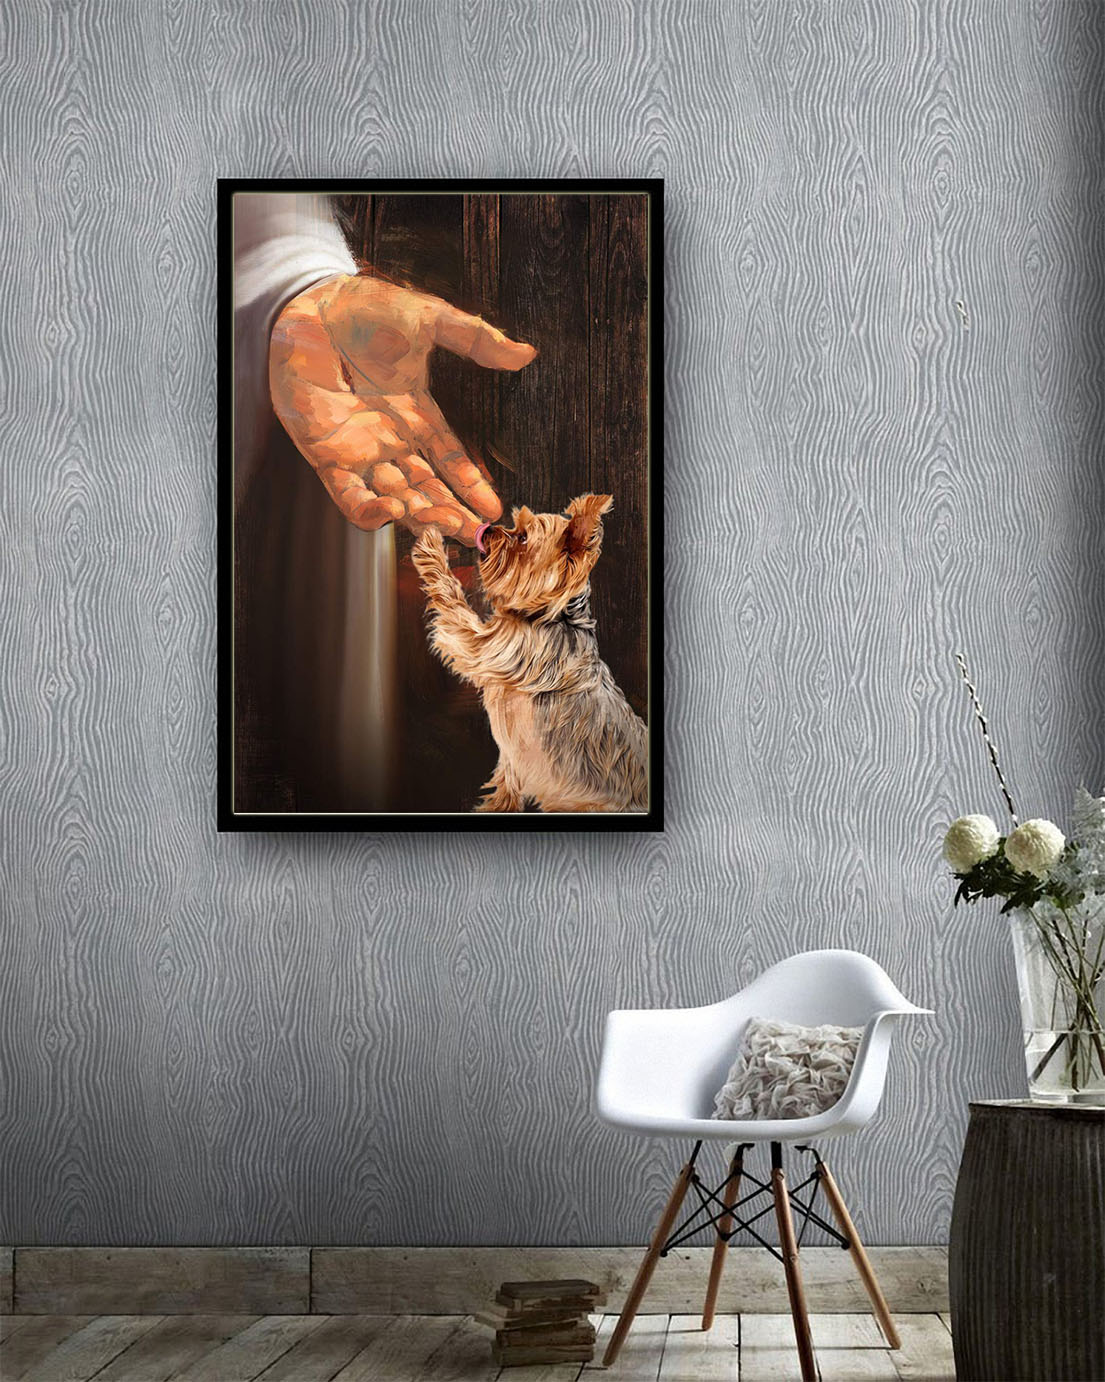 Jesus-Yorkshire-Terrier-in-the-hand-of-god-canvas-print1 -1